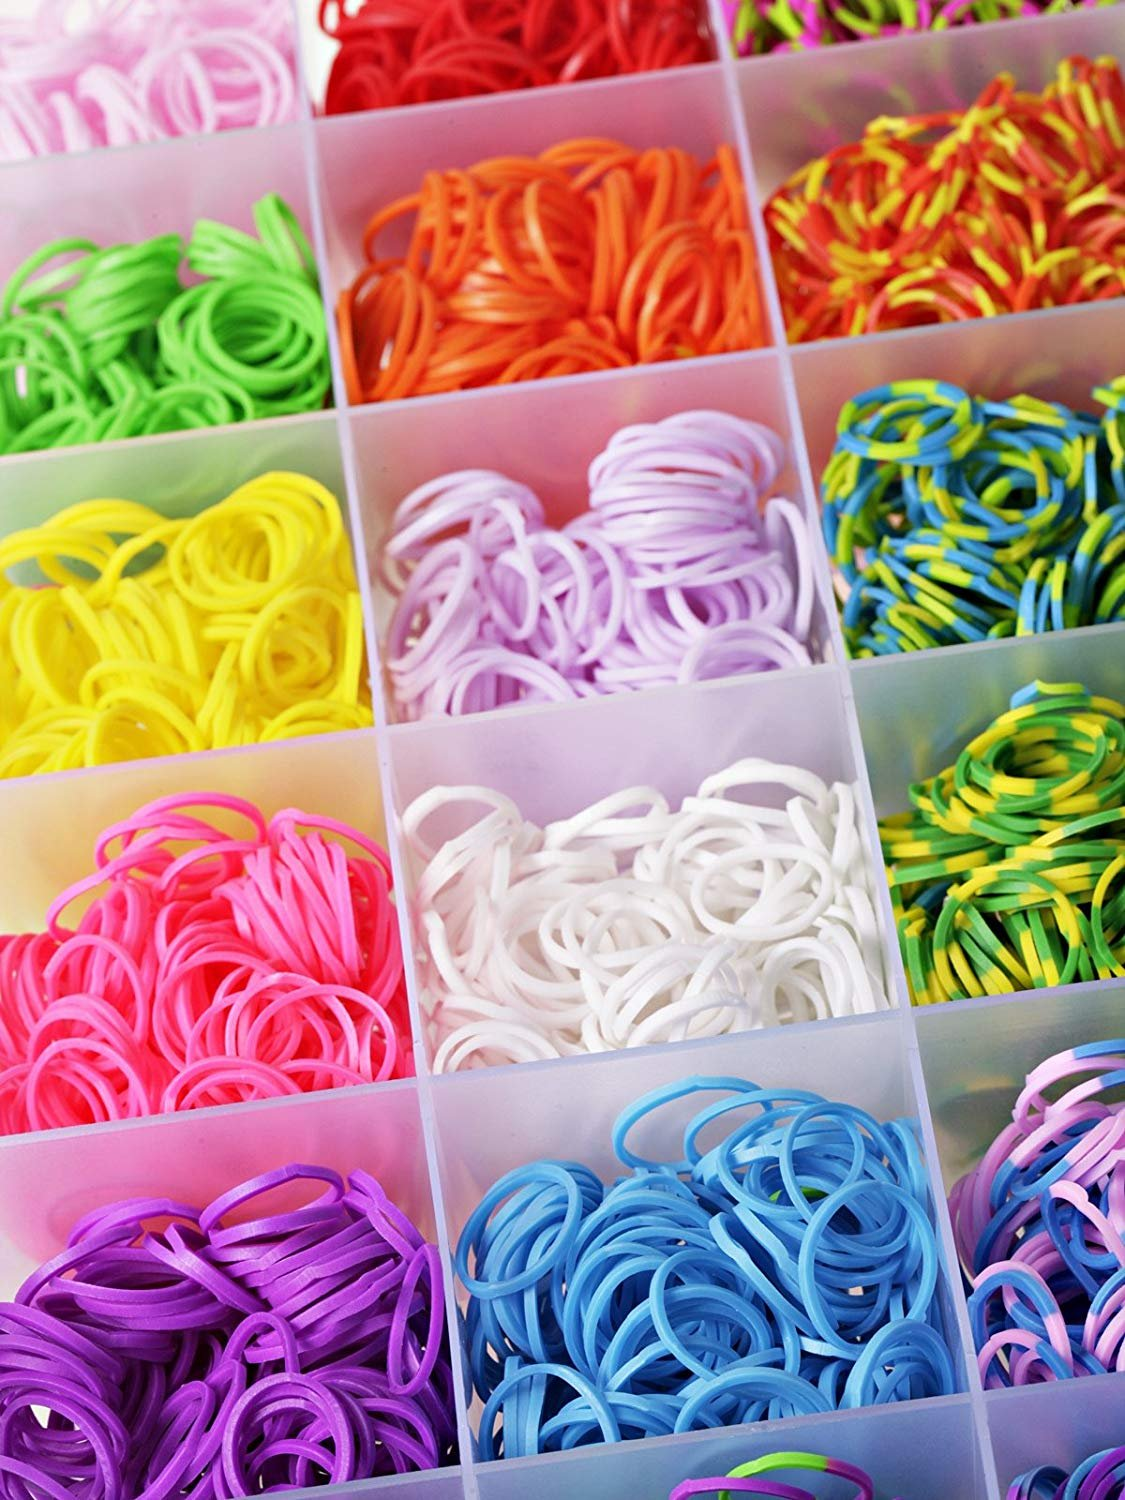 Loom Bandz Kit & Clips Collection with 4200 Bandz + 170 Clips + 5 Hooks + 1 Loom Board 11 Beautiful Colors and Great Storage Case Shopinhand